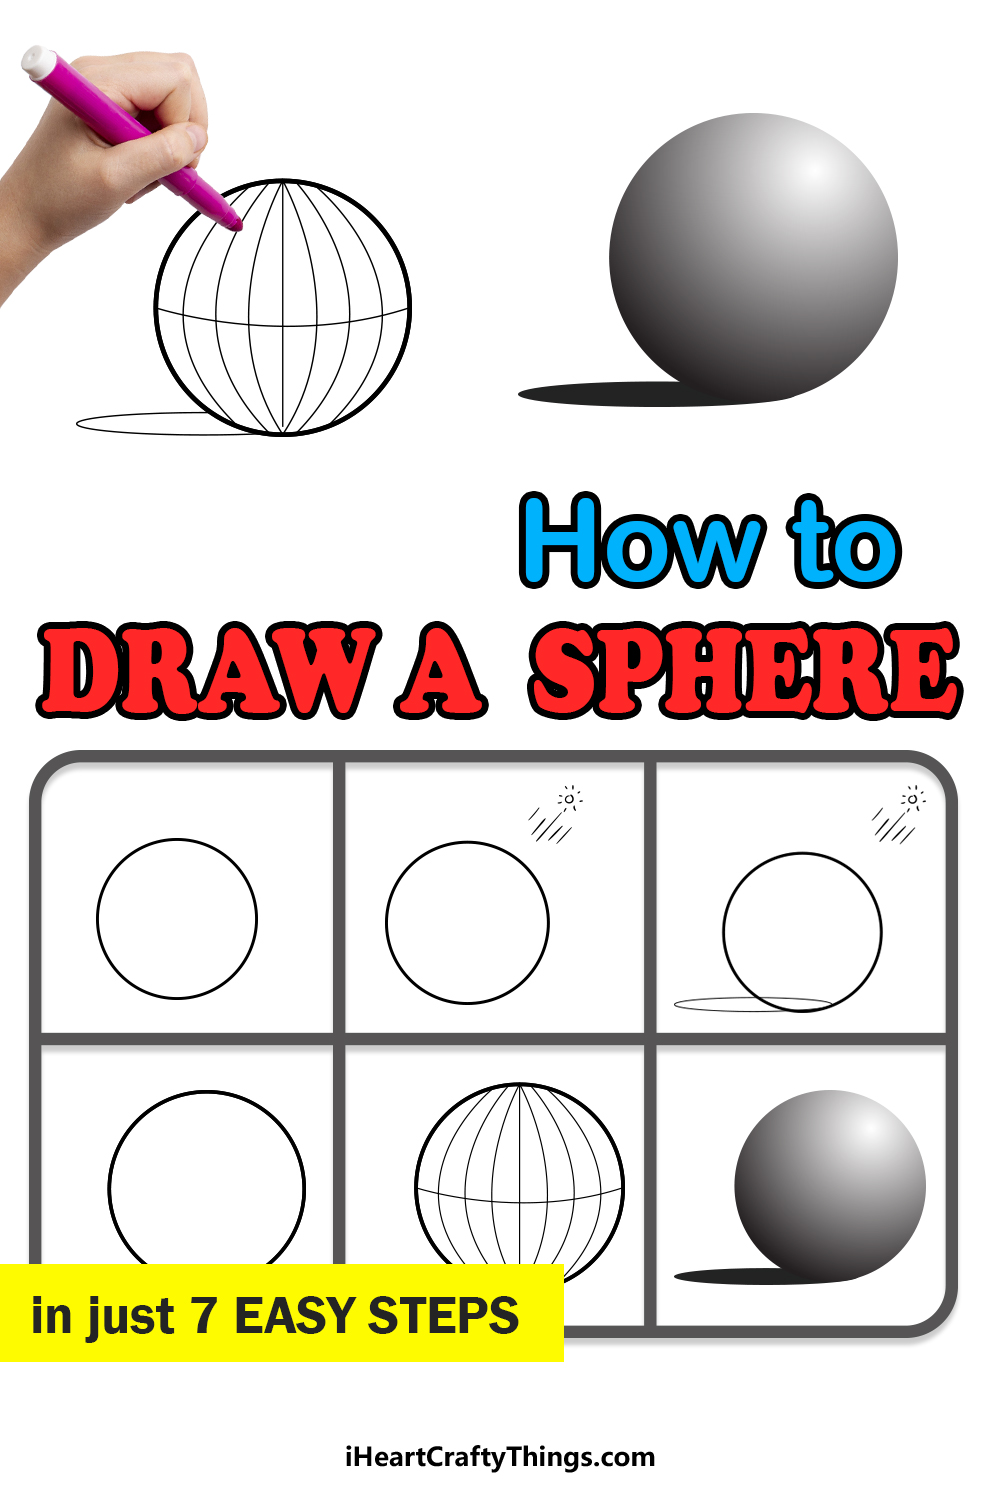 how to draw a sphere in 7 easy steps